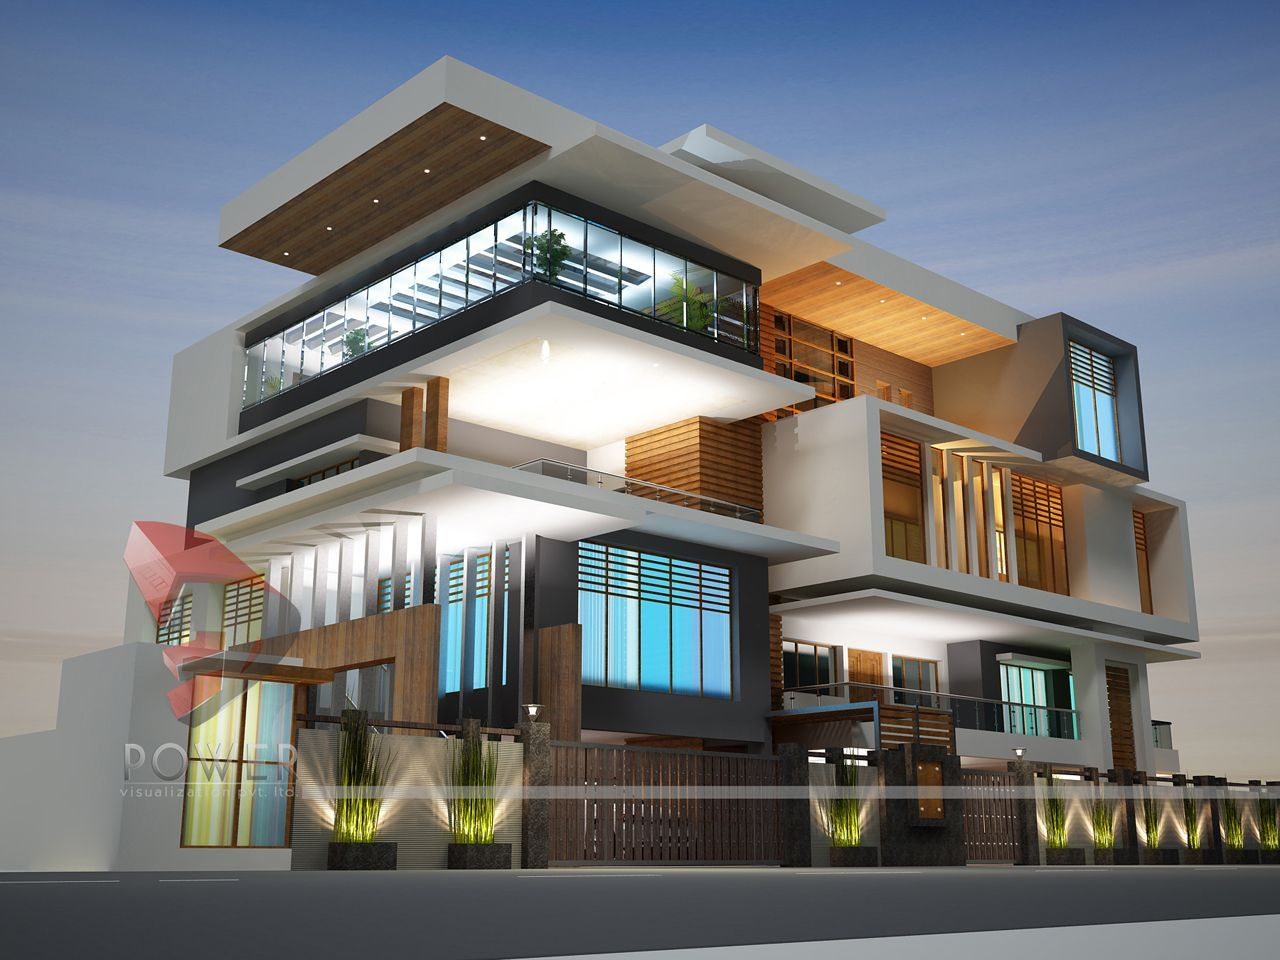 Modern house design in india architecture india modern for New small home designs in india